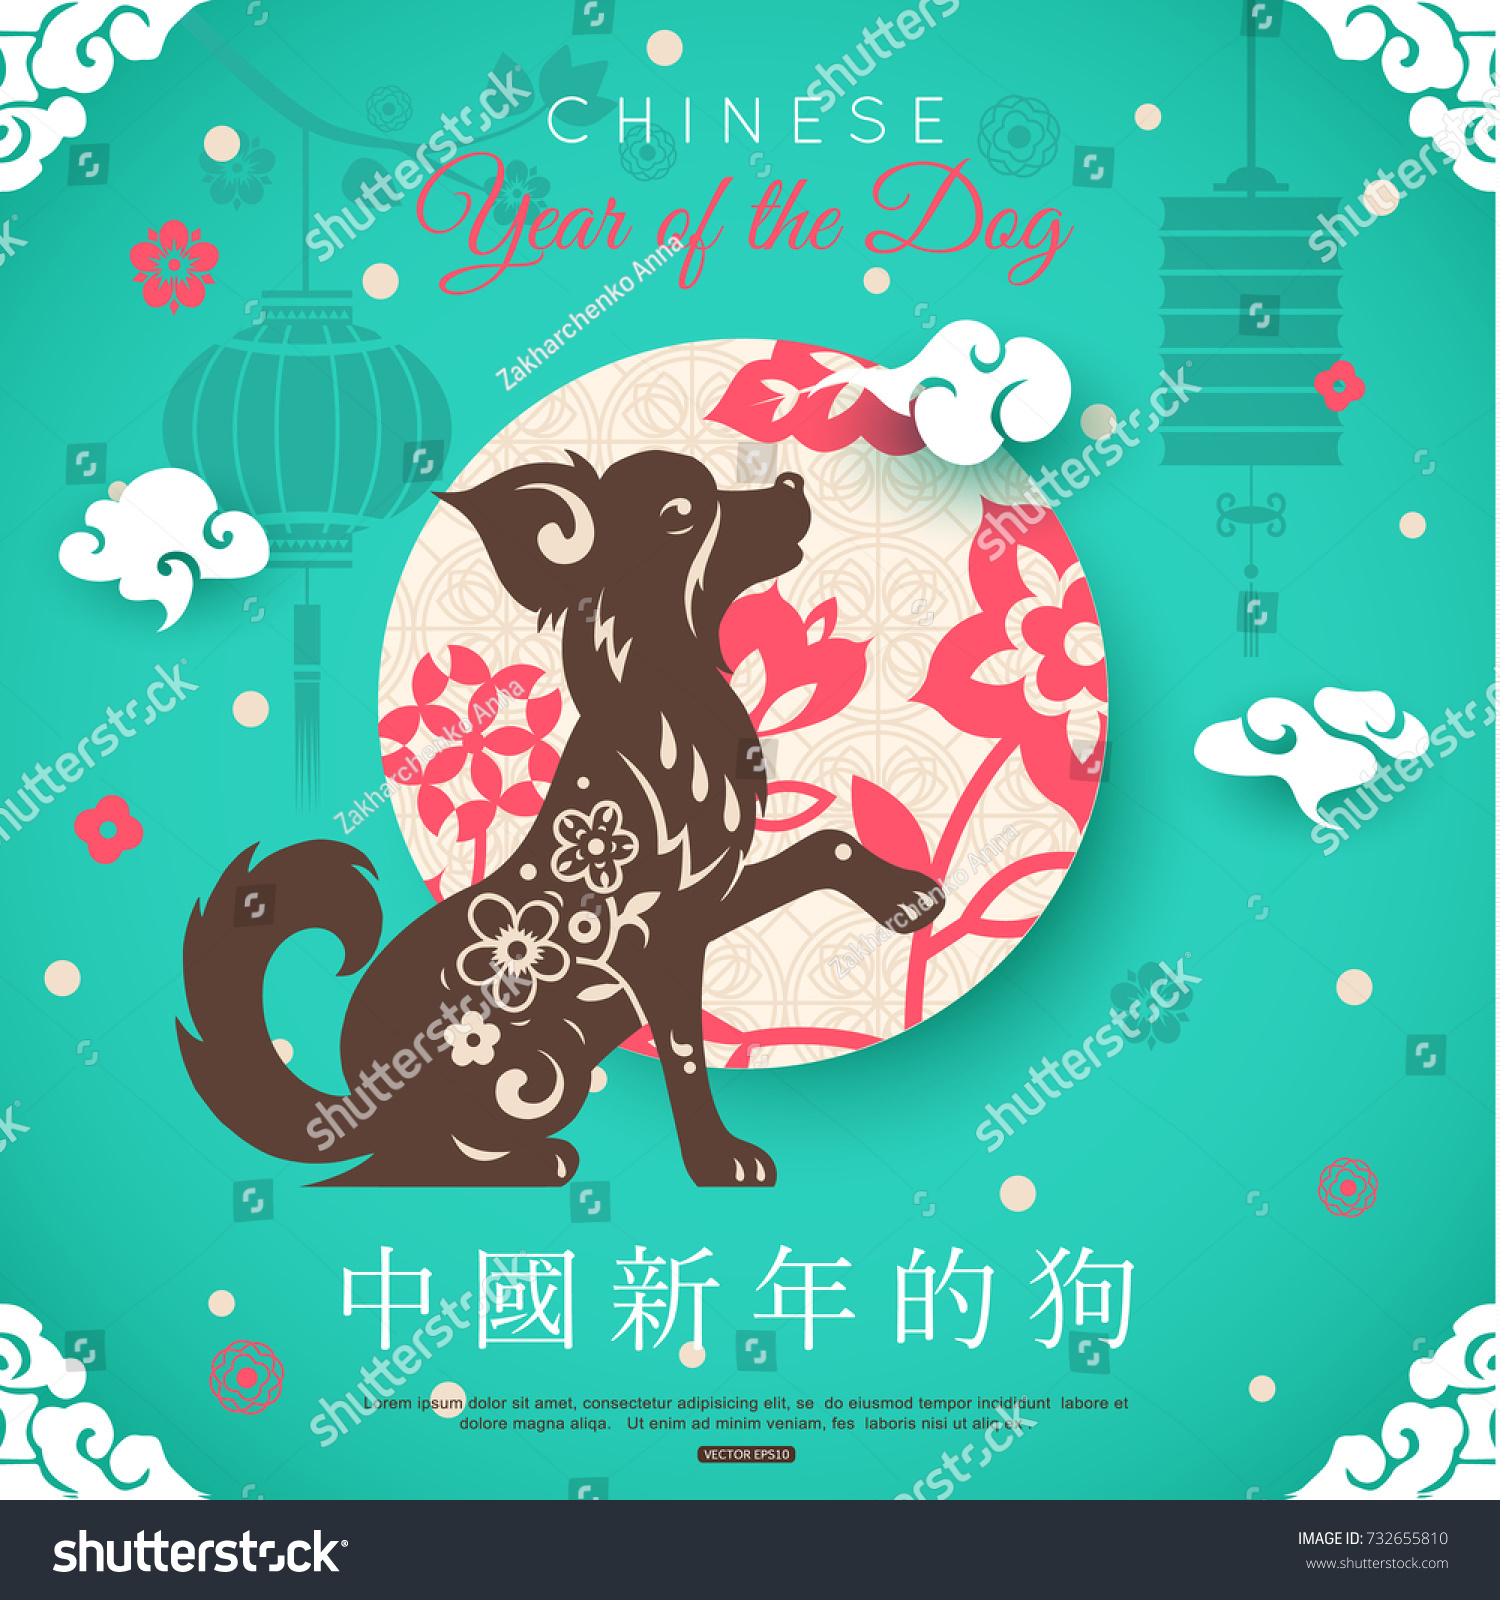 Greeting card 2018 chinese new year stock vector royalty free greeting card for 2018 chinese new year with cute dog and traditional asian decor clouds m4hsunfo